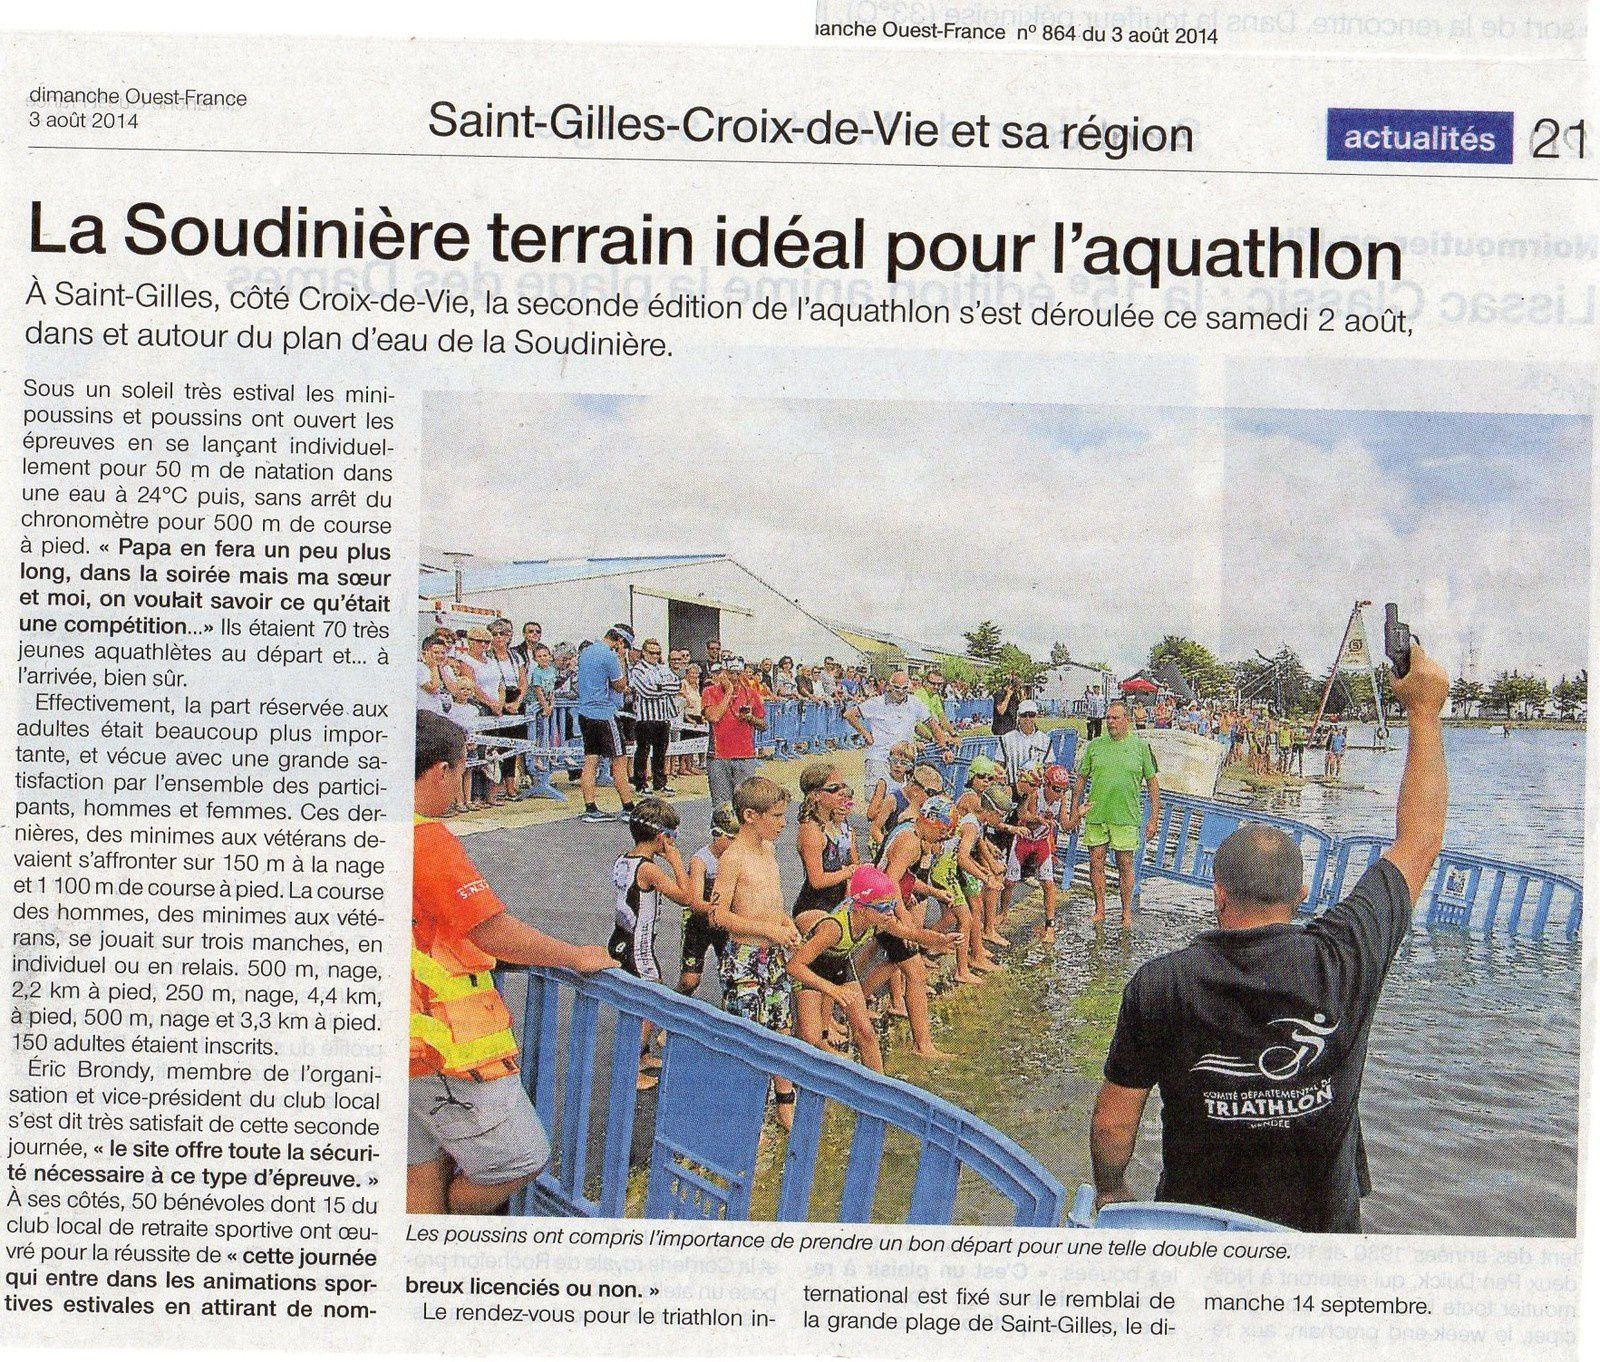 OUEST FRANCE LOCAL 3 AOUT 2014